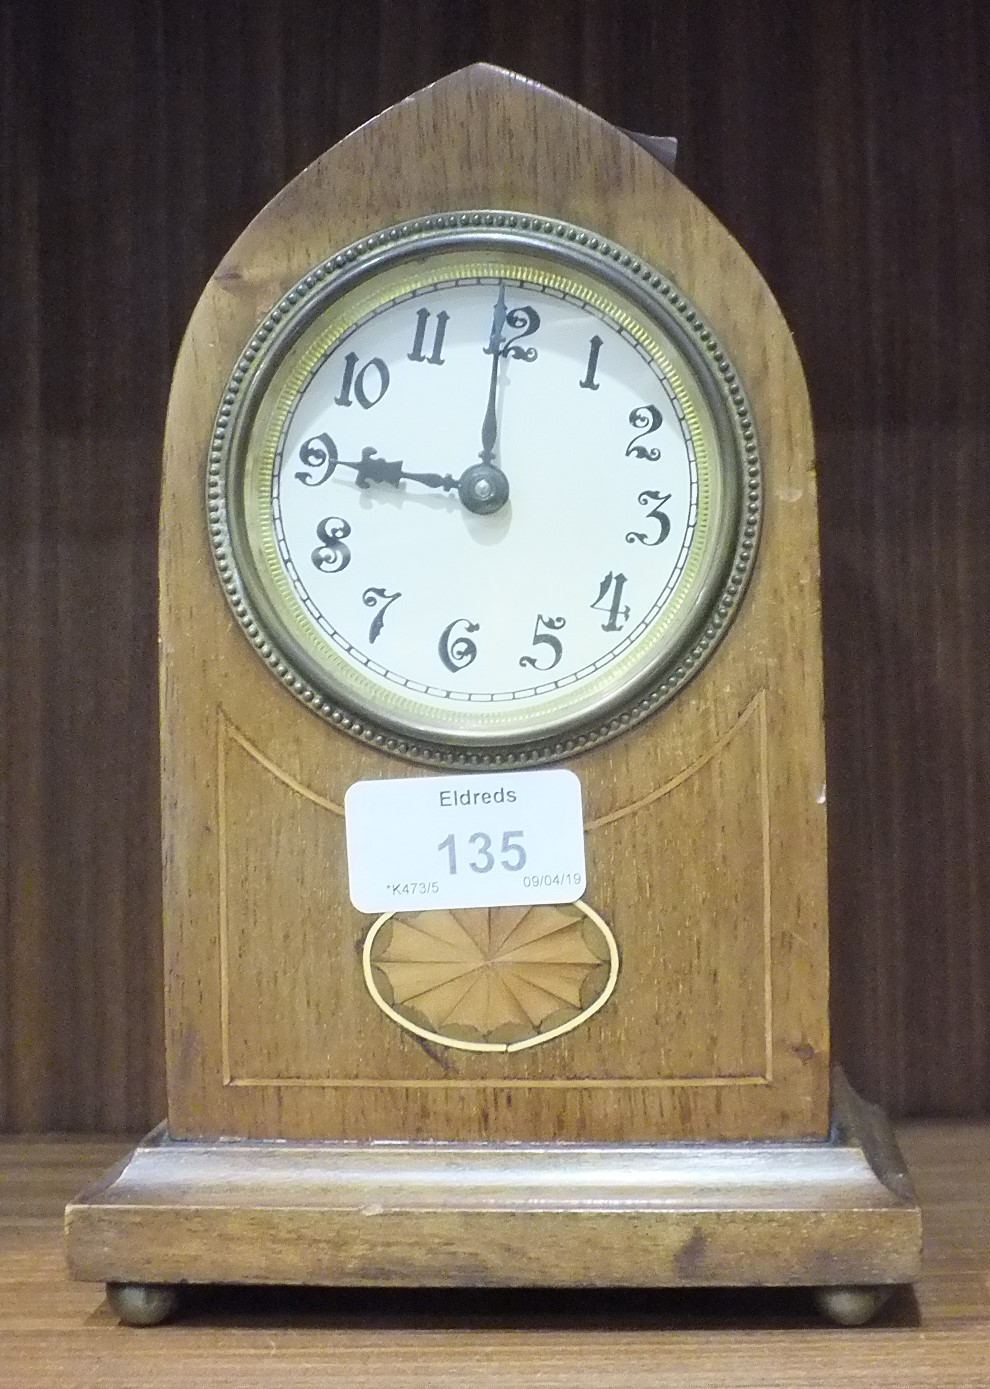 Lot 135 - An Edwardian inlaid mahogany lancet shaped mantel clock, 20cm high and a brass standard lamp in